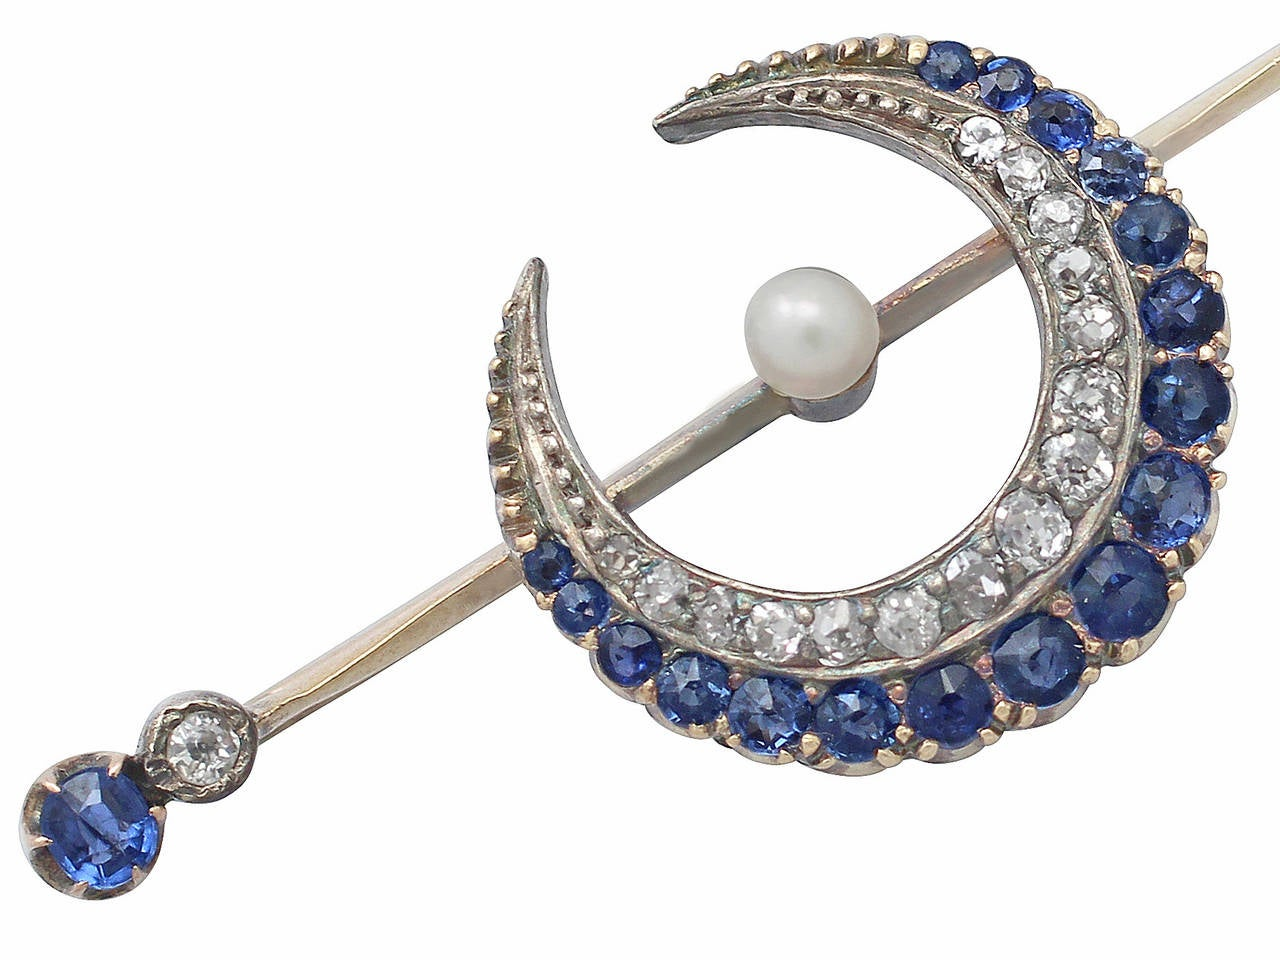 Antique Diamond Brooches For Sale